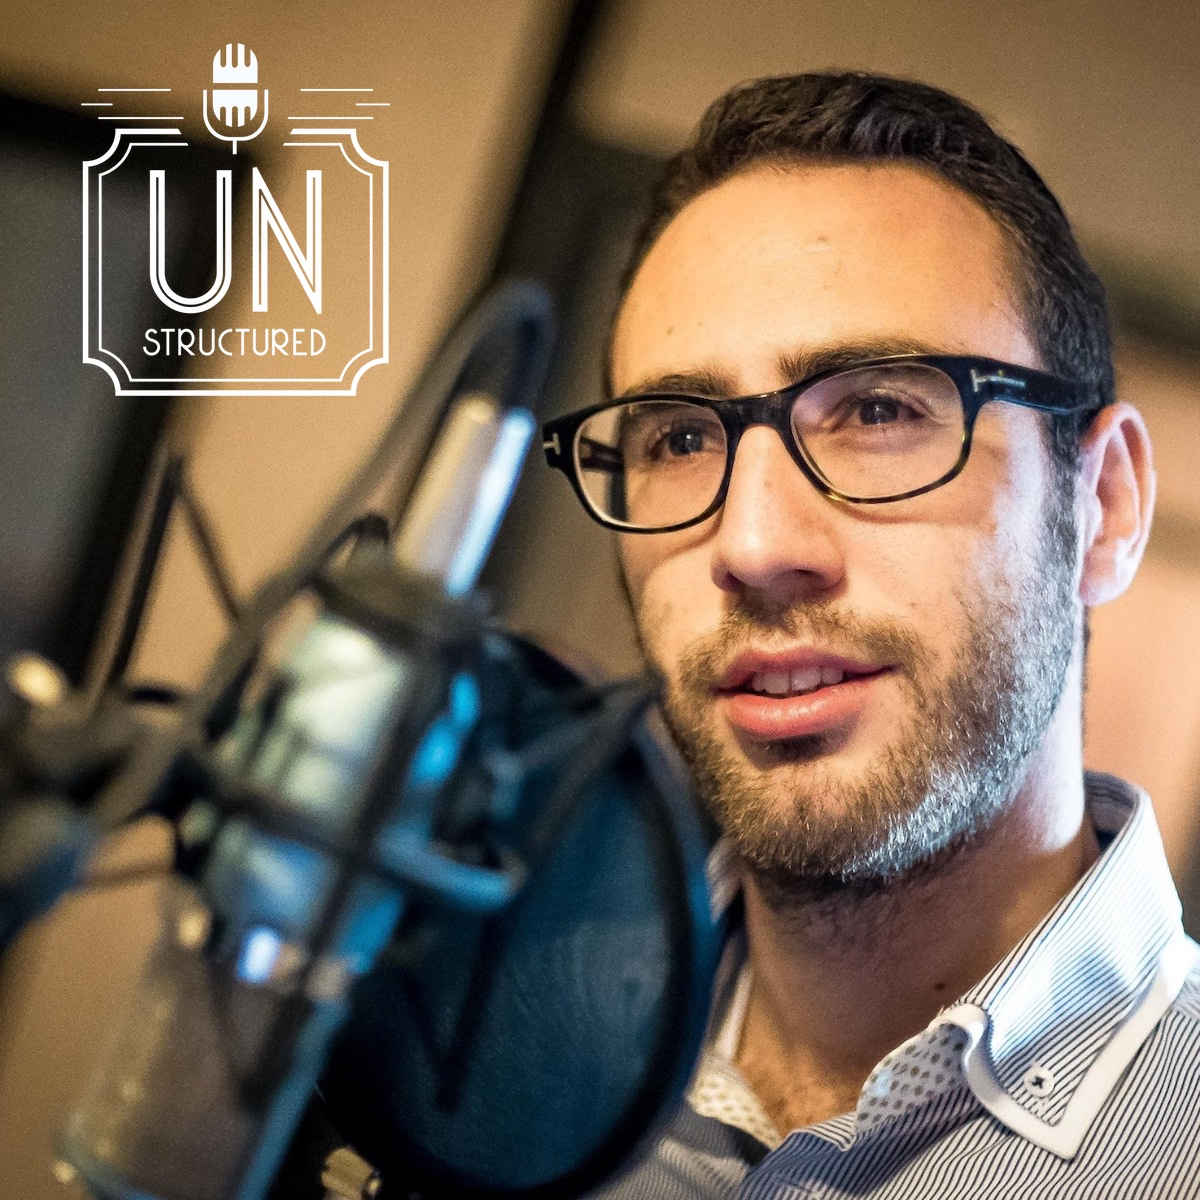 038 - Daniel Gefen UnstructuredPod Unstructured interviews - Dynamic Informal Conversations with unique wide-ranging and well-researched interviews hosted by Eric Hunley